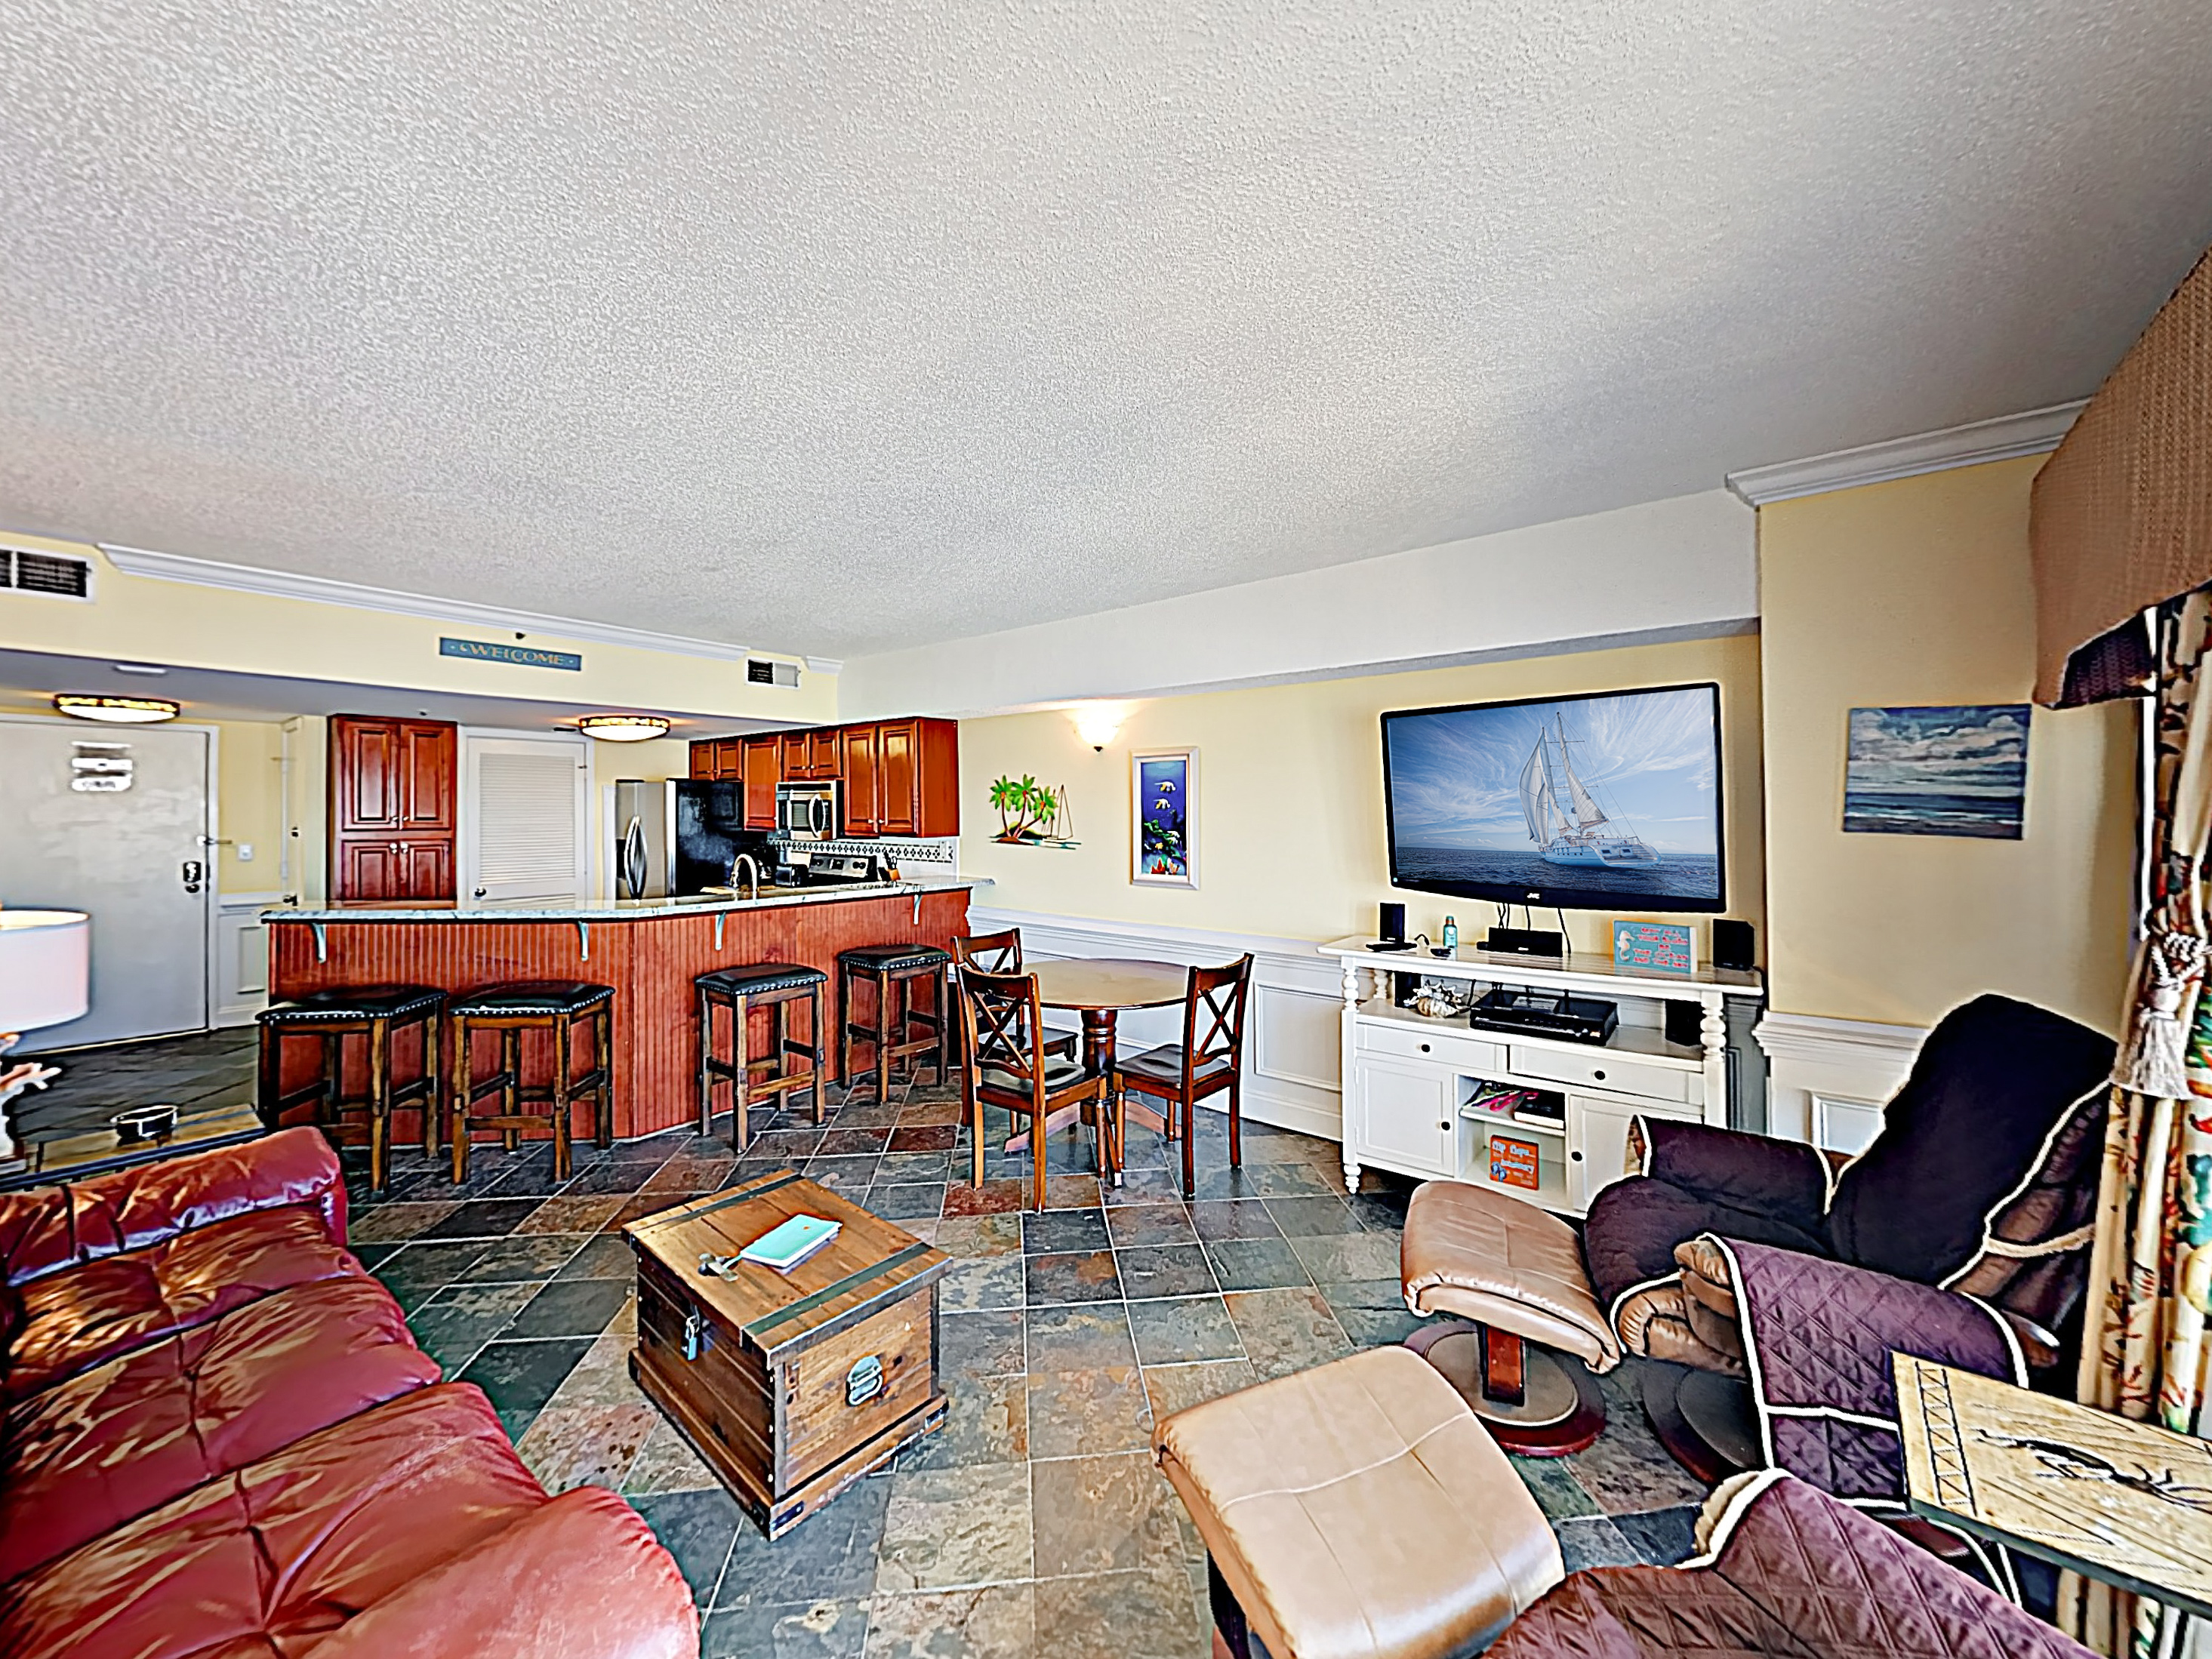 Myrtle Beach SC Vacation Rental Welcome! This 10th-floor